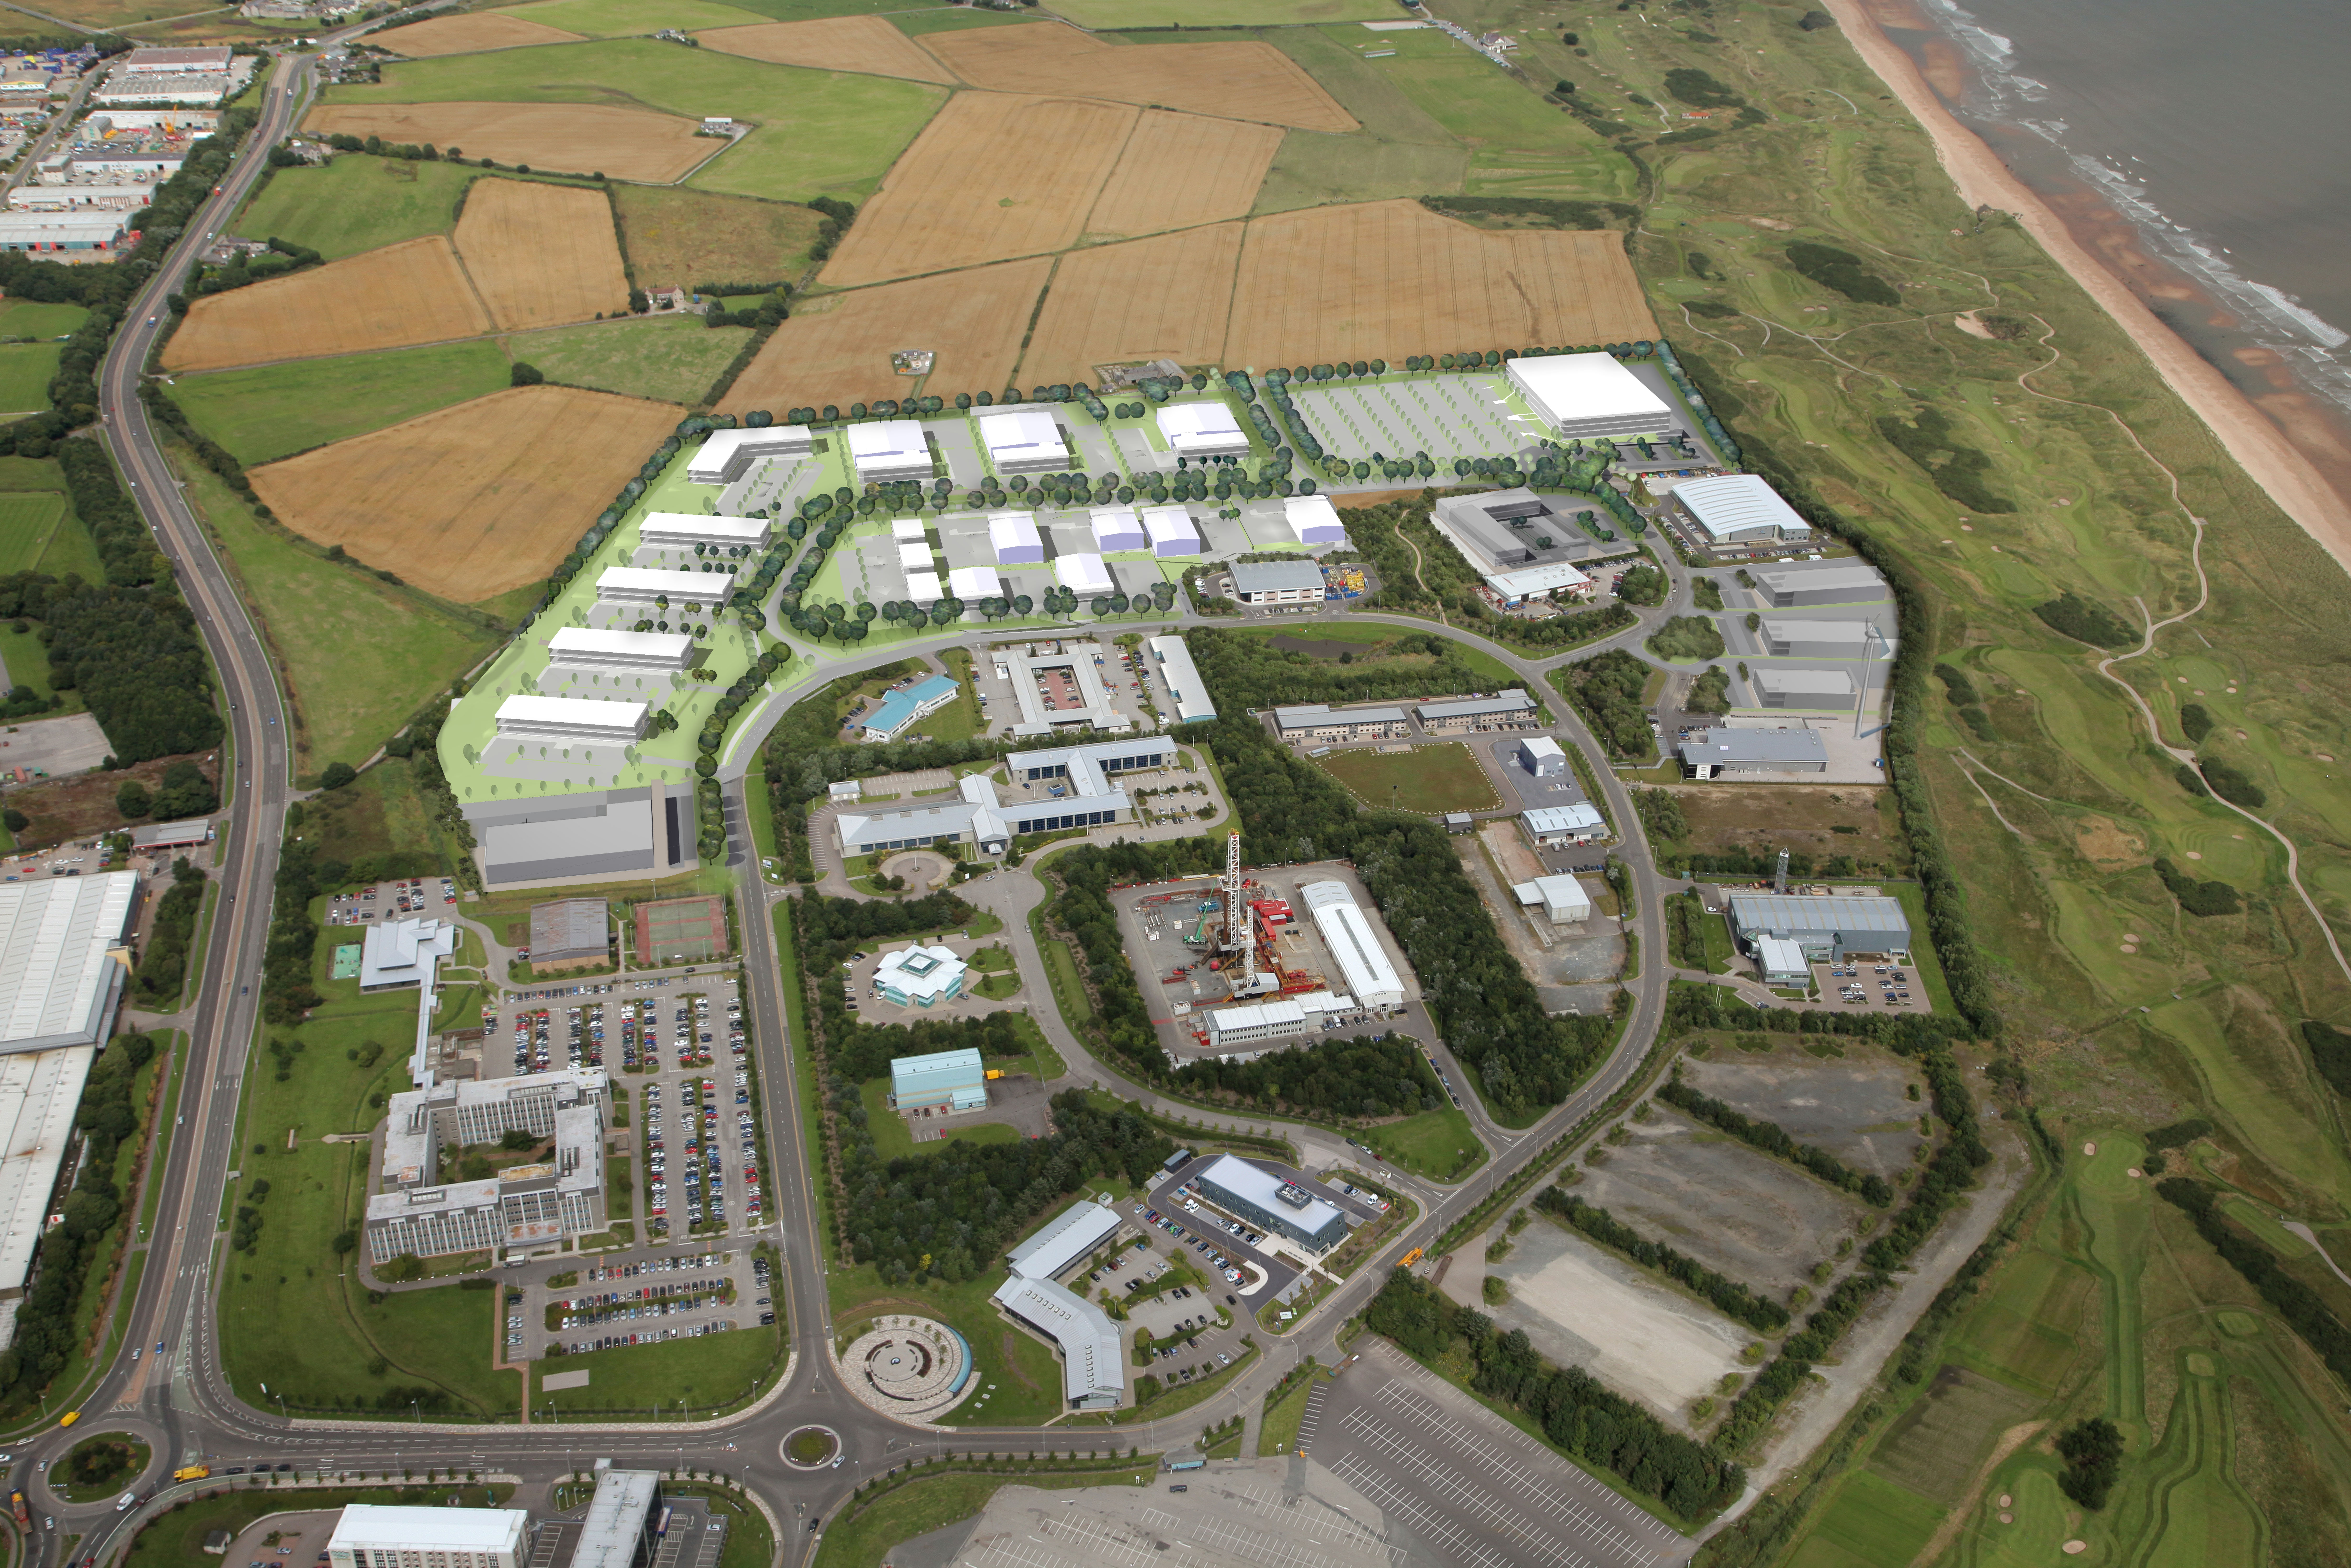 Aerial image of Aberdeen Energy Park, outlining indicative planned development for expansion land